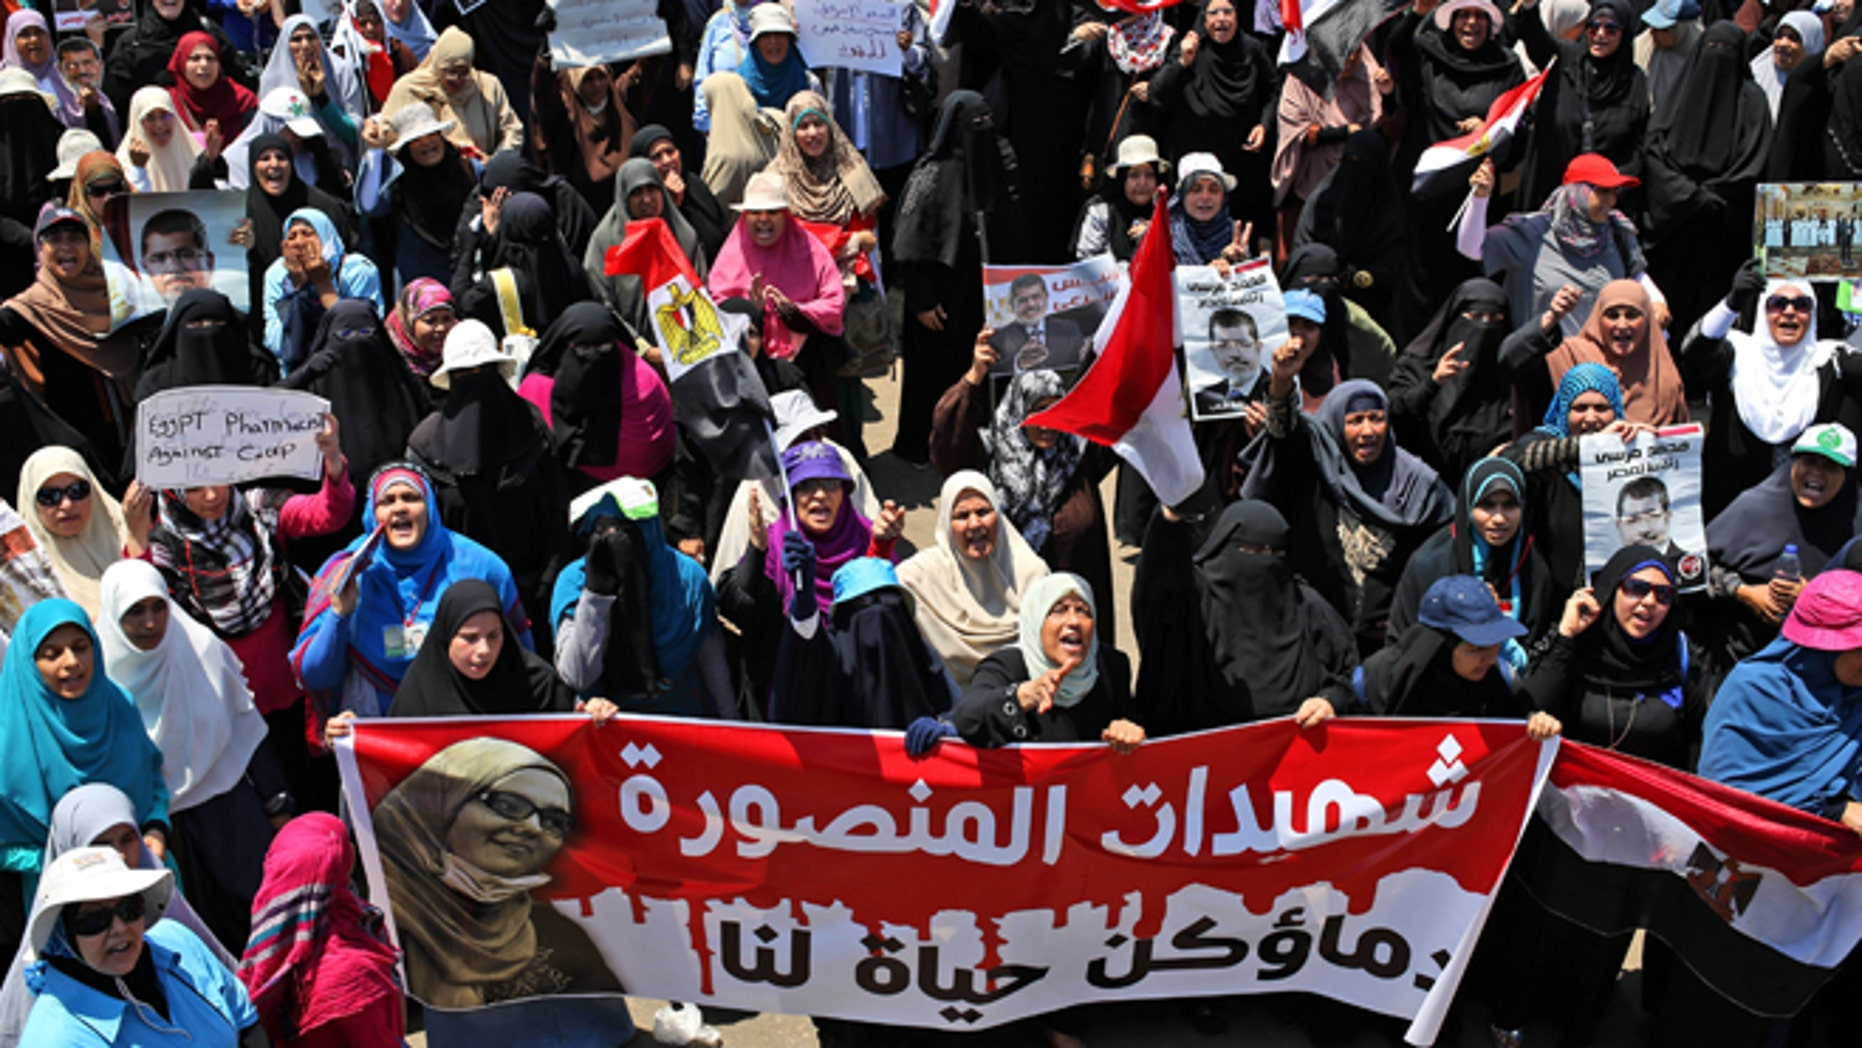 """July 21, 2013: Supporters of ousted Egyptian President Mohammed Morsi carry a banner with Arabic words that reads, """"Martyrs of Mansoura, your bloods is life for us,"""" depicting a woman who was killed during a recent protest, as they attend a demonstration in front of the National Council for Human Right building in Cairo, Egypt."""